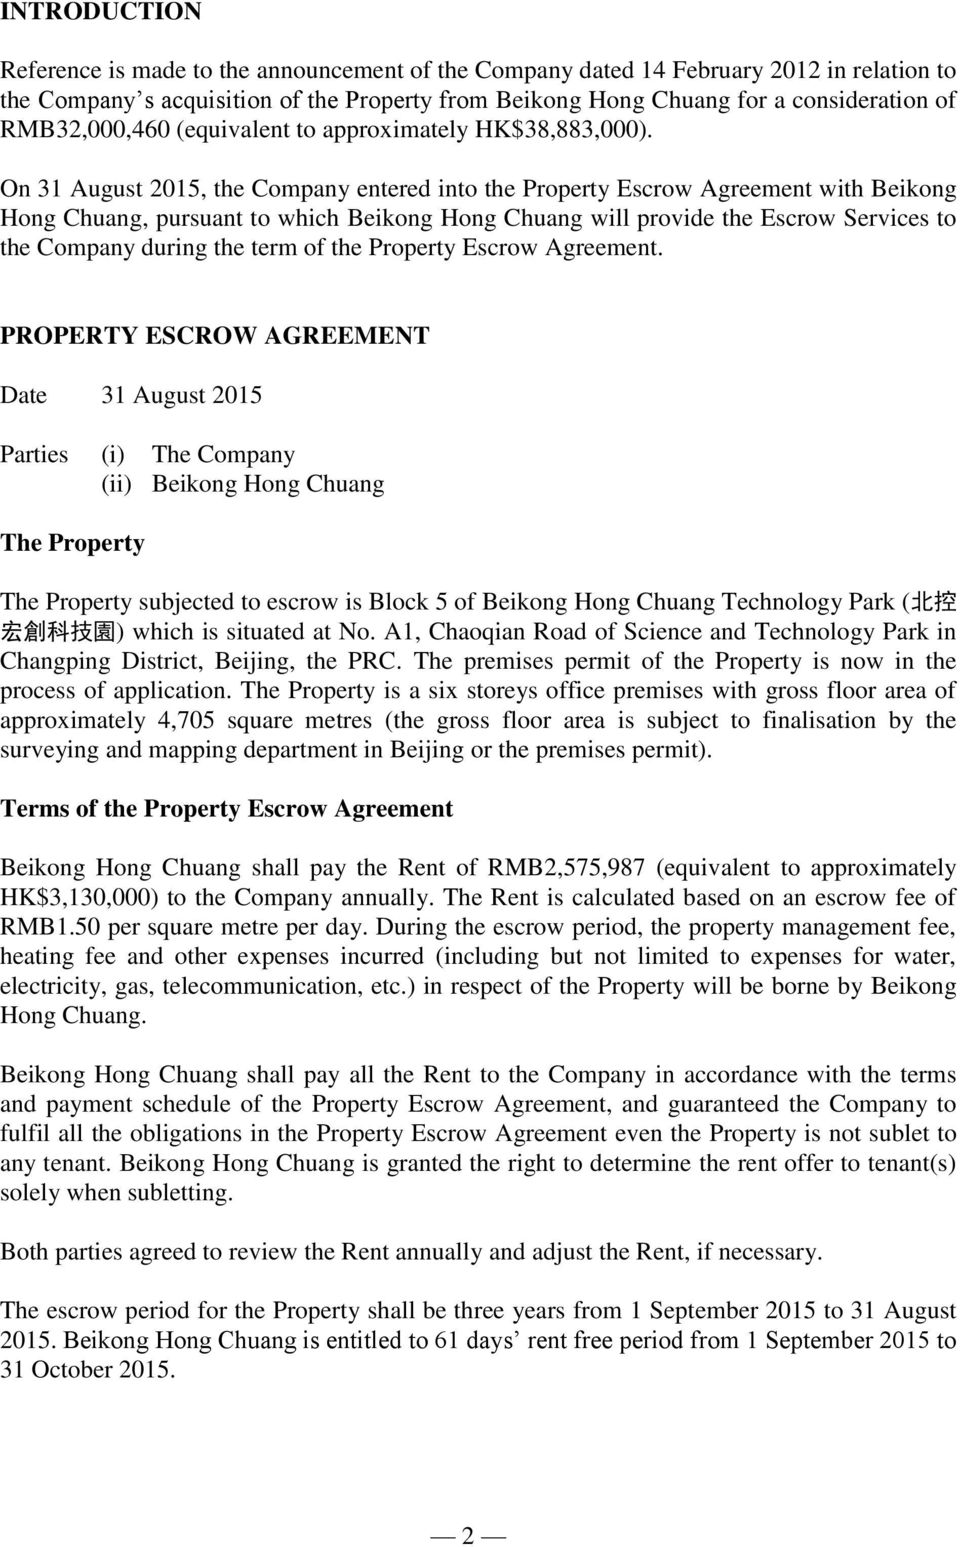 On 31 August 2015, the Company entered into the Property Escrow Agreement with Beikong Hong Chuang, pursuant to which Beikong Hong Chuang will provide the Escrow Services to the Company during the